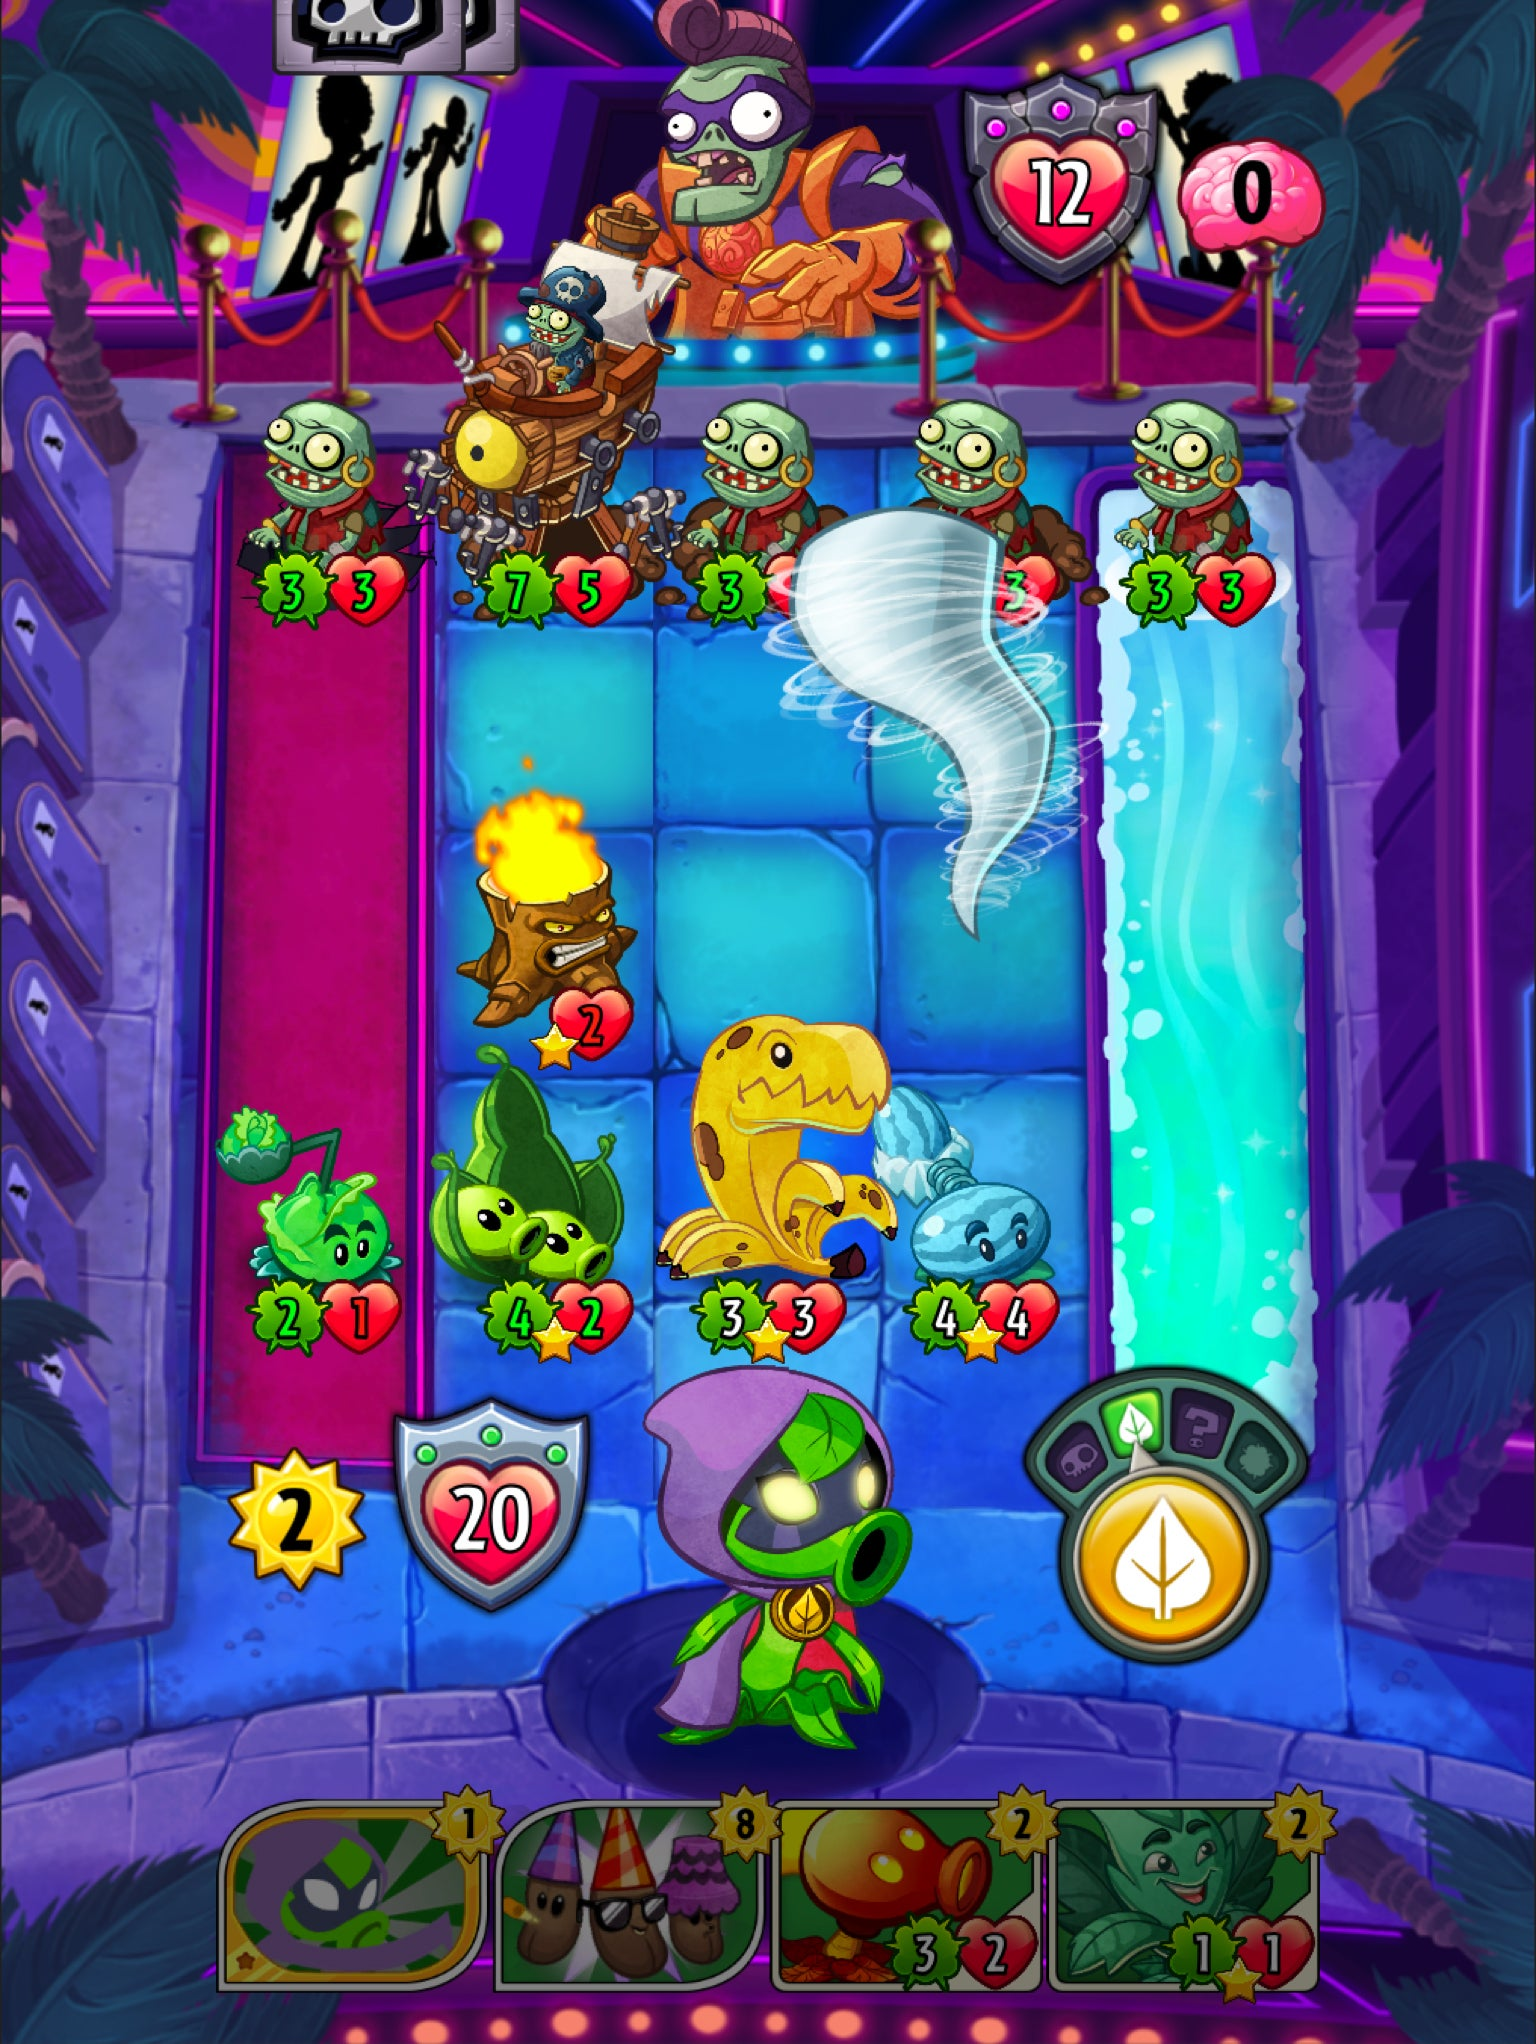 Hearthstone-Style Plants Vs. Zombies Spin-Off Launches